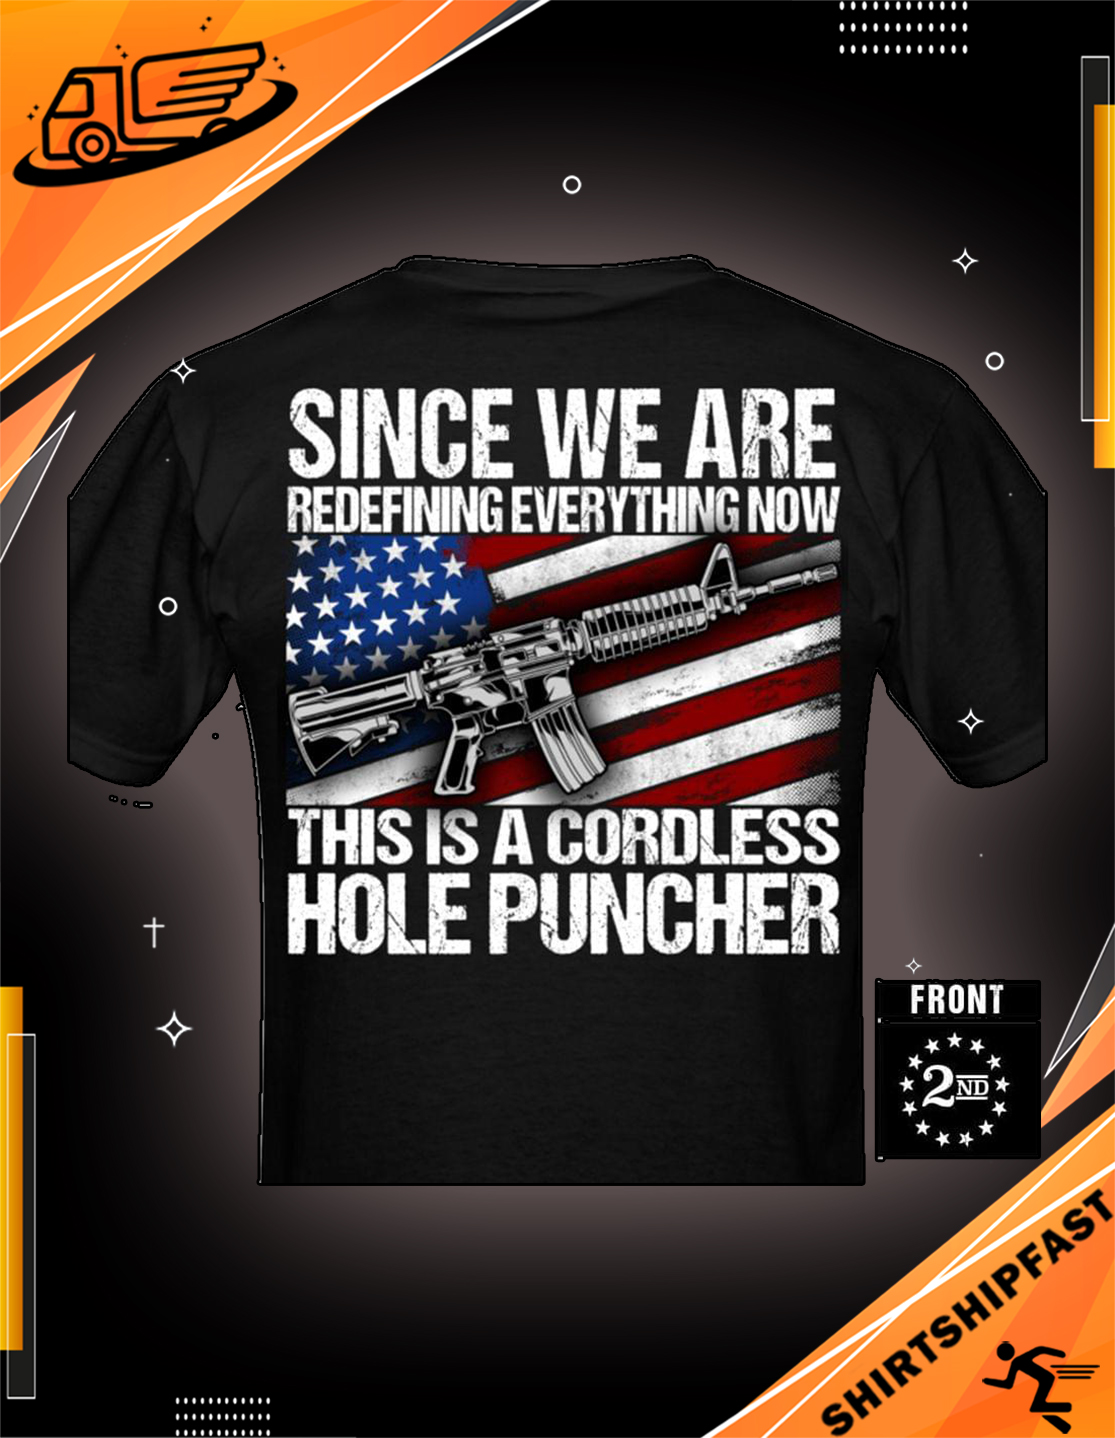 Gun american flag Since we are redefining everything now this is a cordless hole puncher shirt - Picture 2